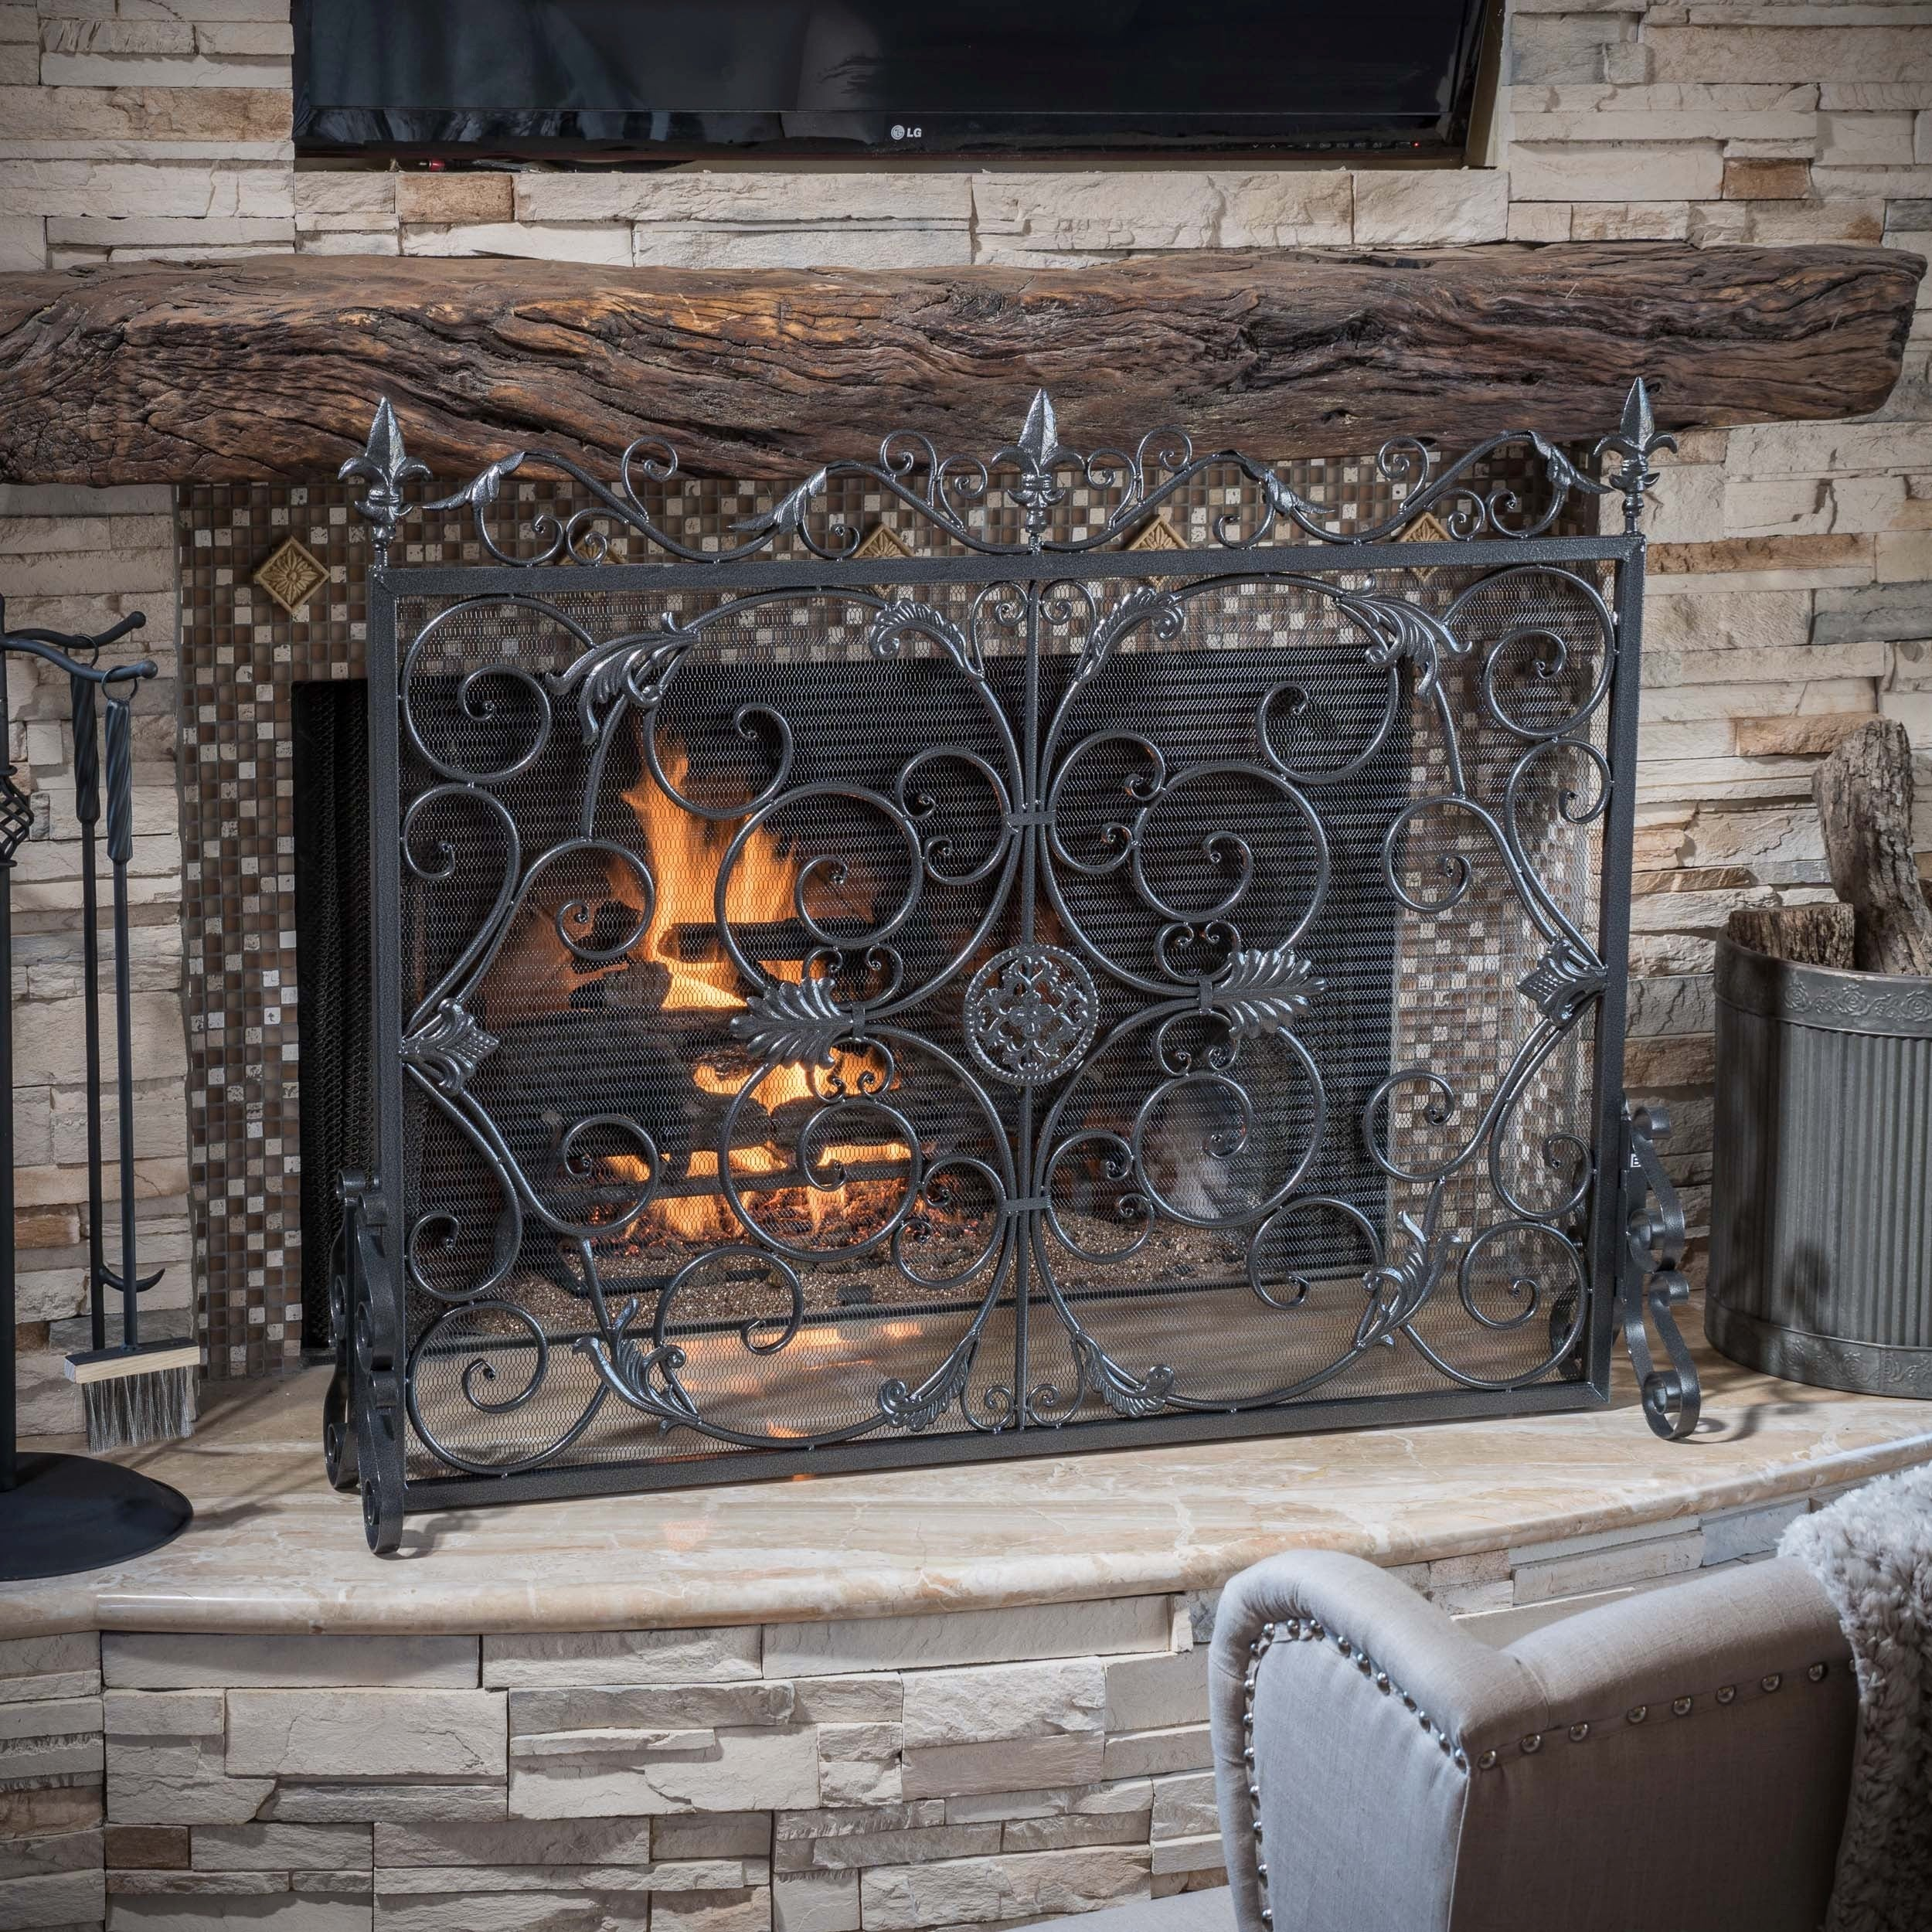 bains fireplaces with co suites fireplace glass uk islington screen bainsfireplaces electric fires large